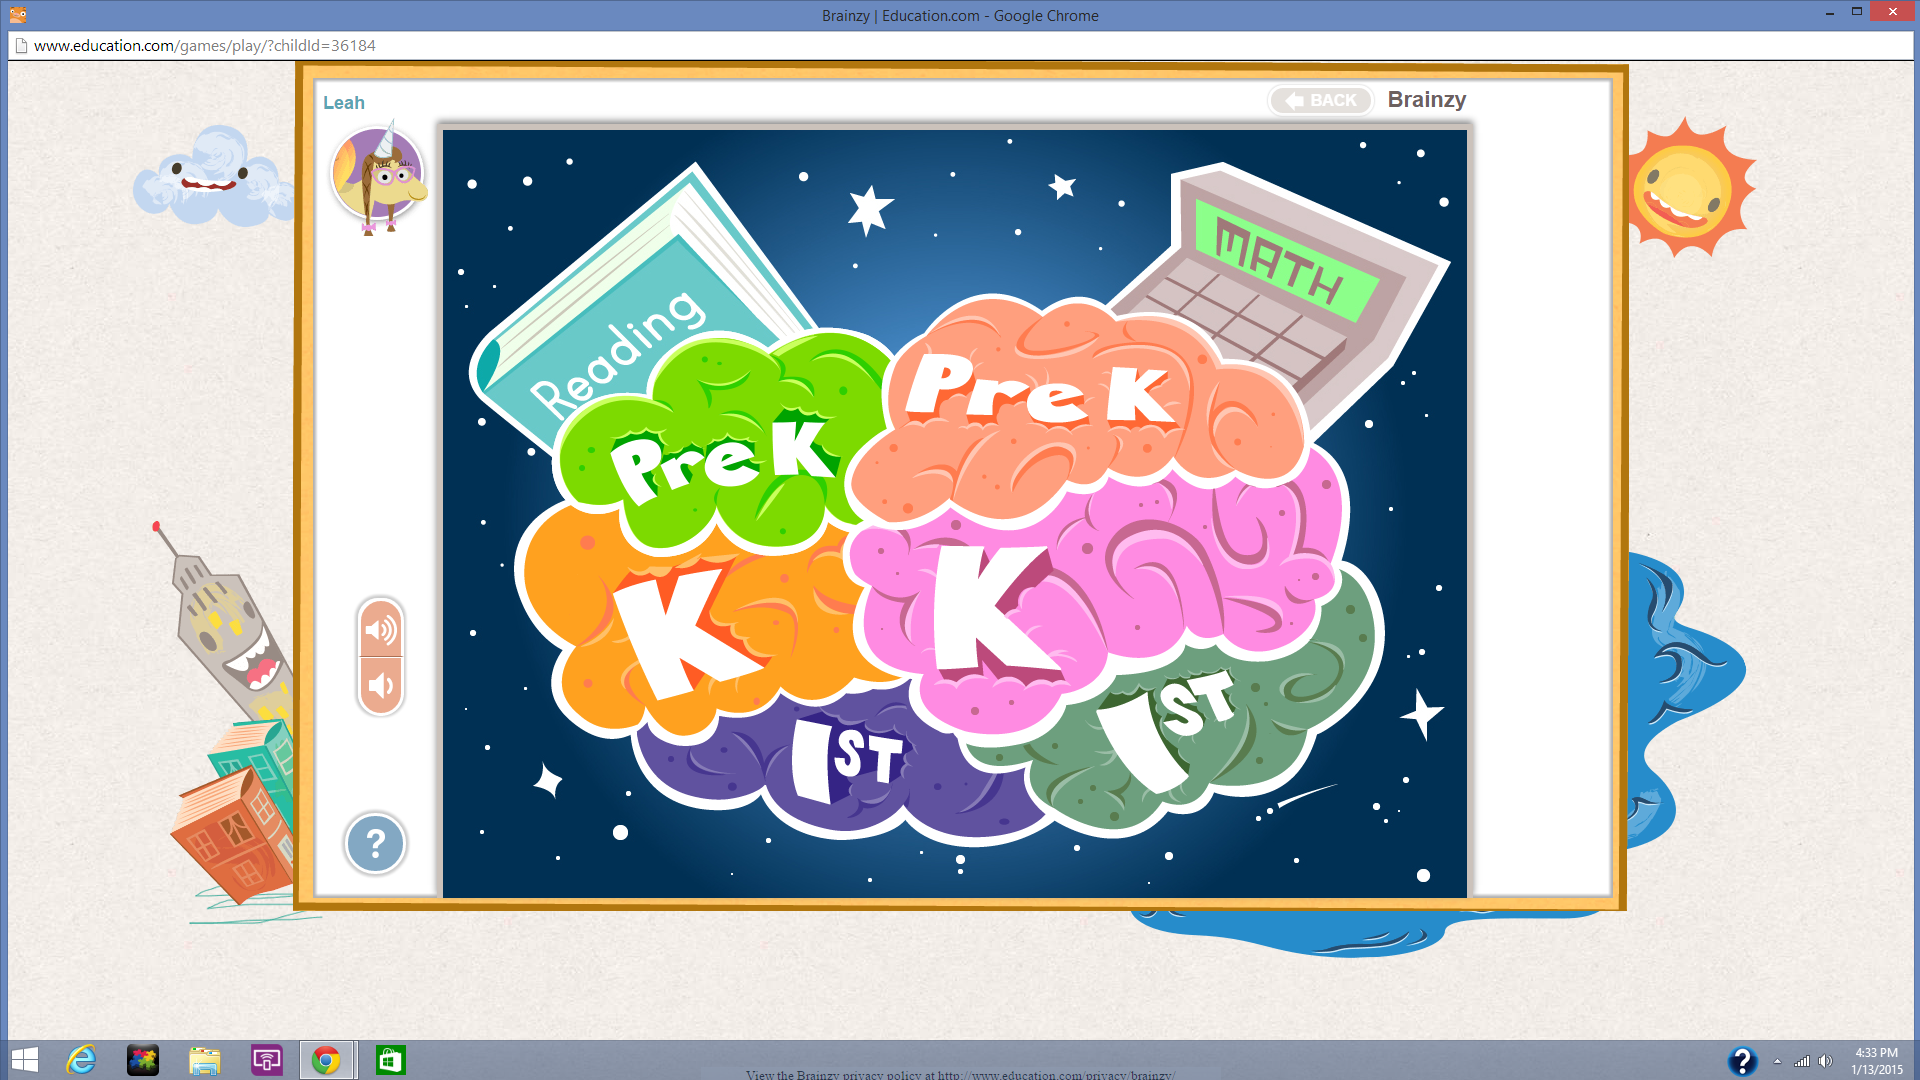 Brainzy Educational website for the puter and Tablets